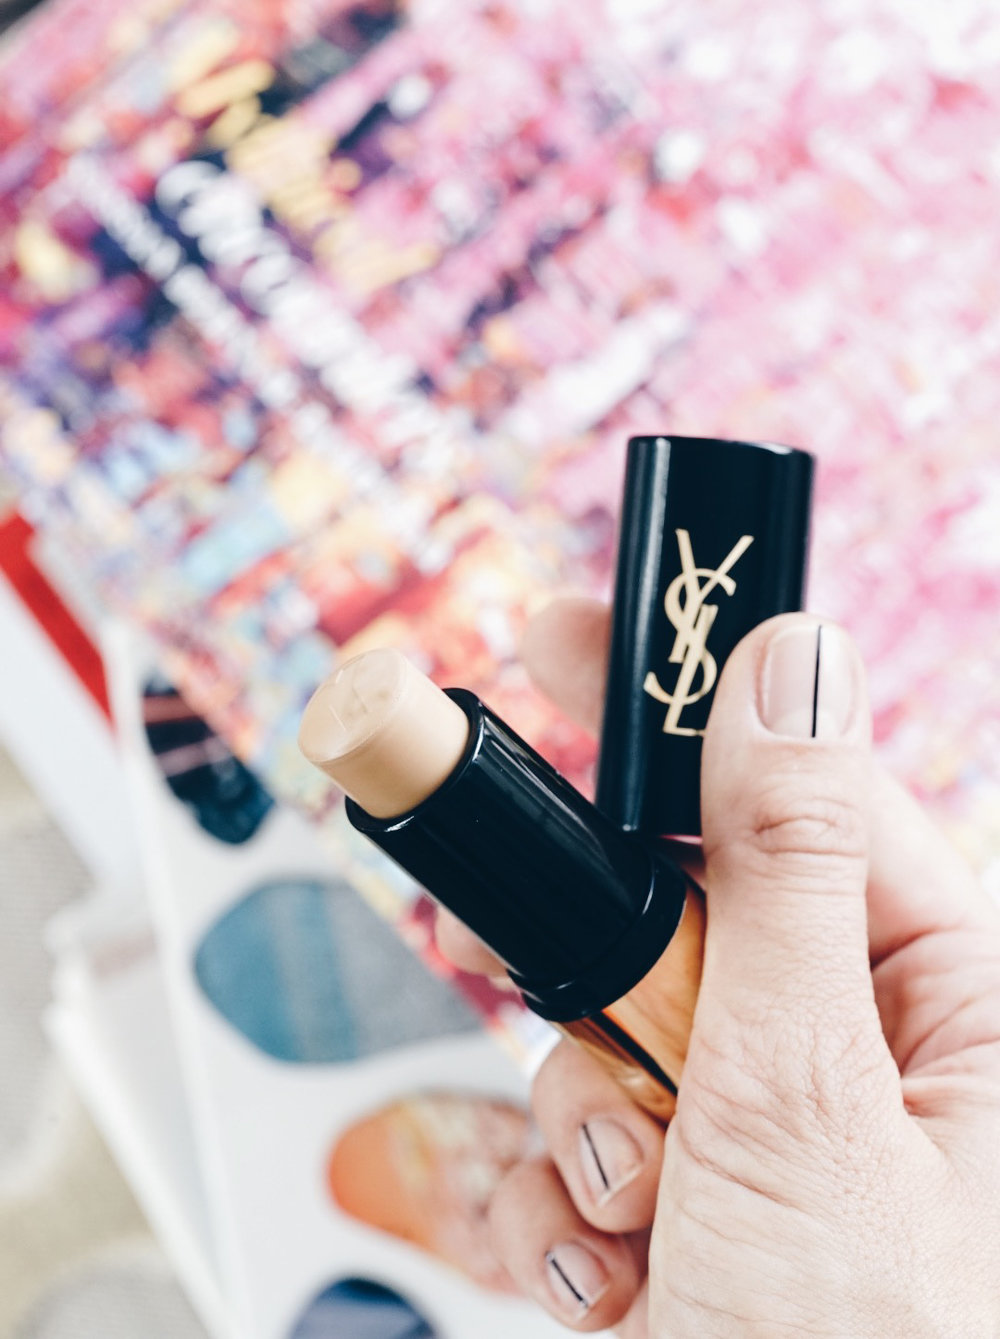 YSL Beauté All Hours Foundation Stick